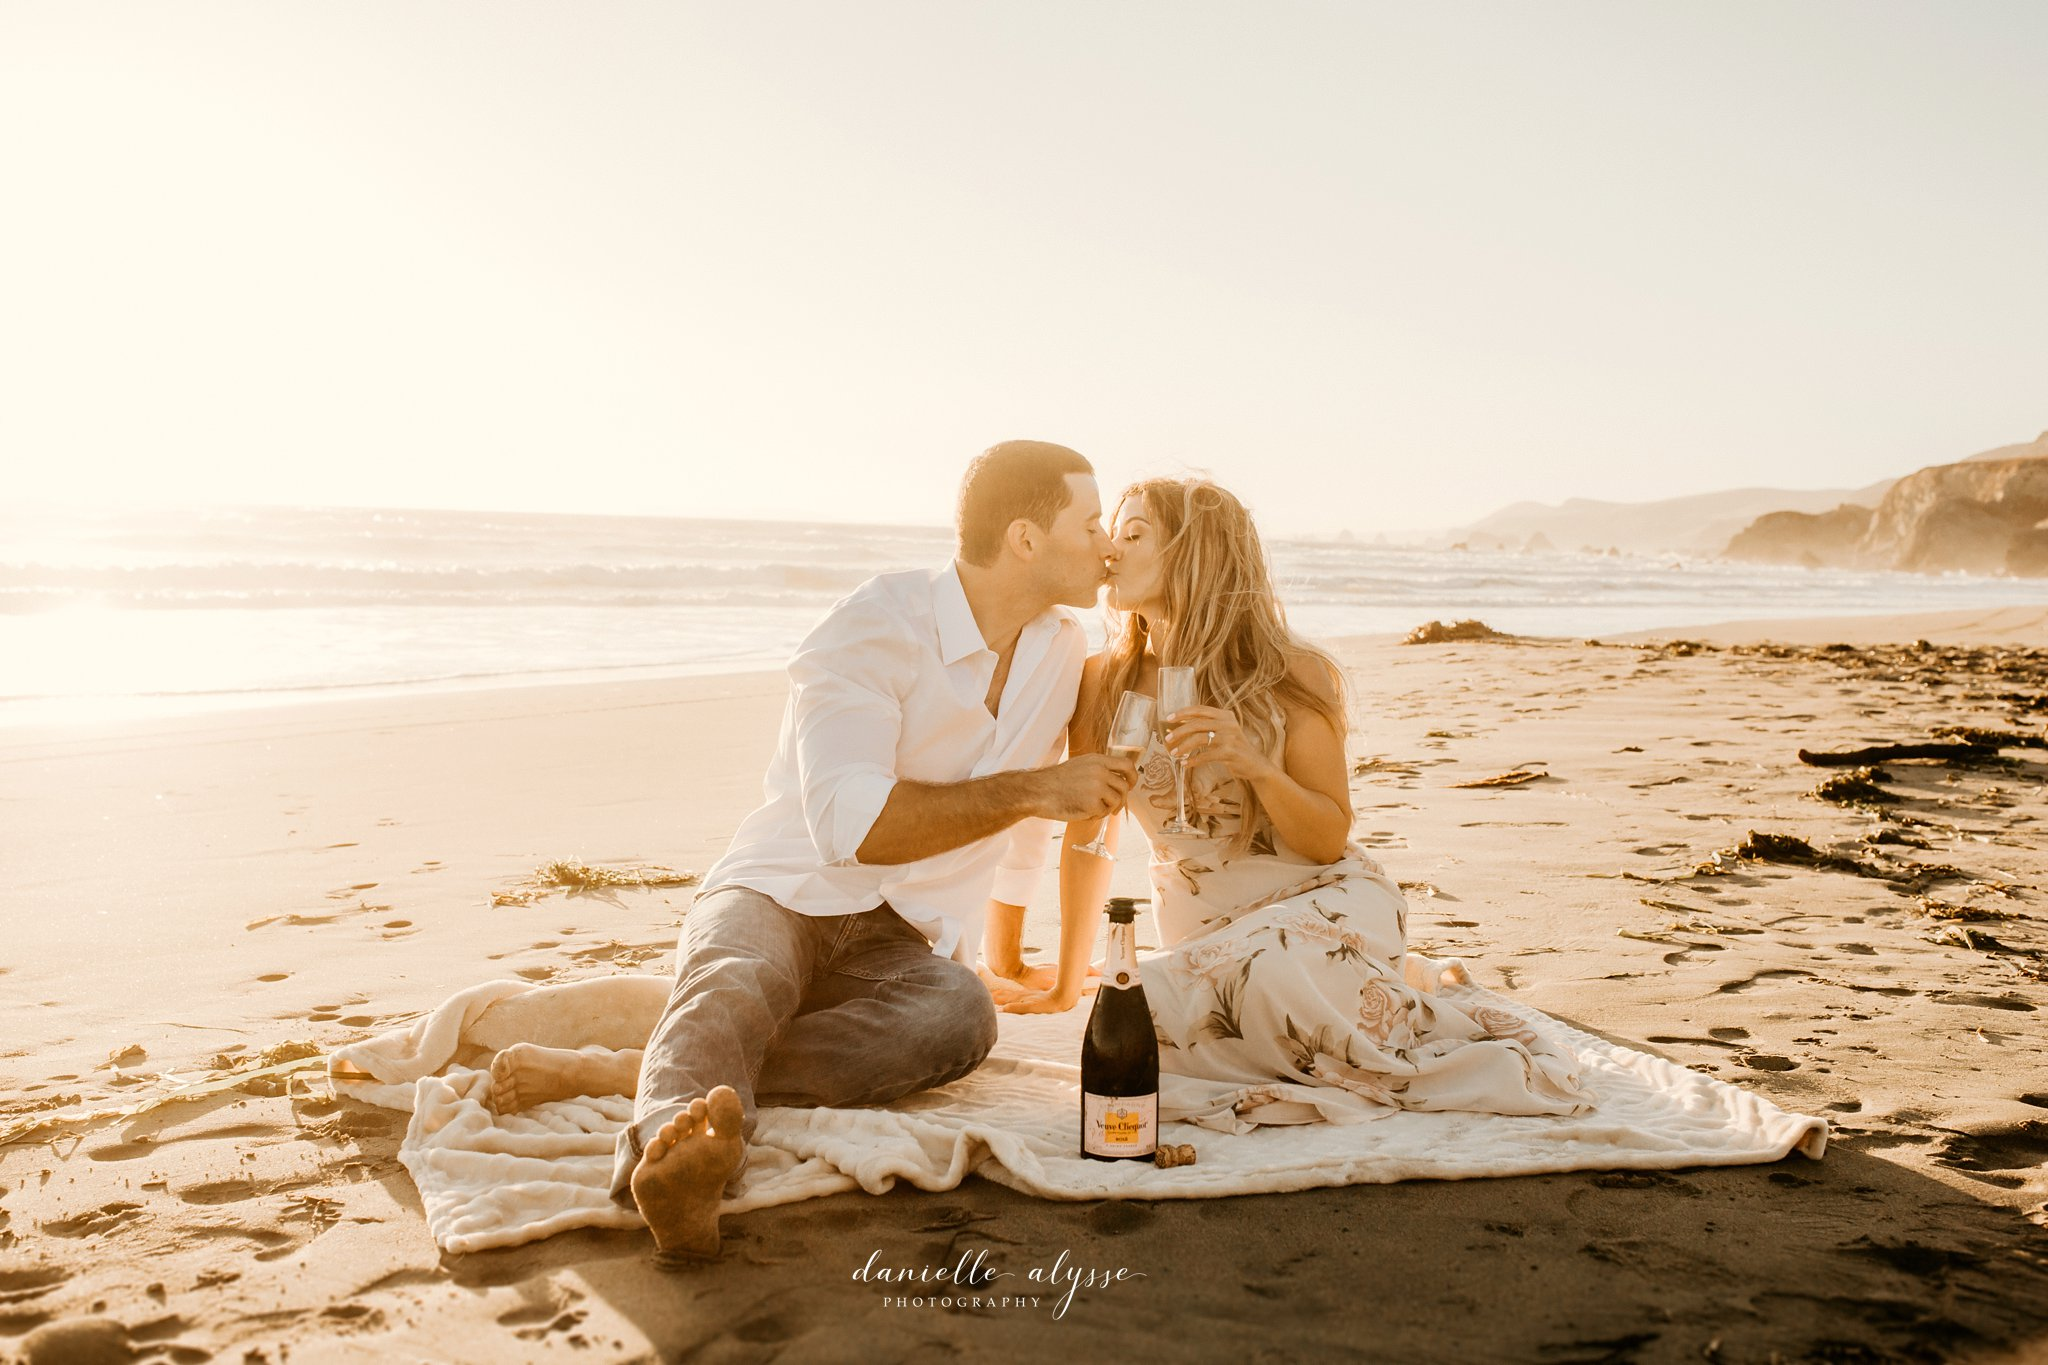 180804_engagement_katie_matt_dillon_beach_napa_danielle_alysse_photography_blog_59_WEB.jpg